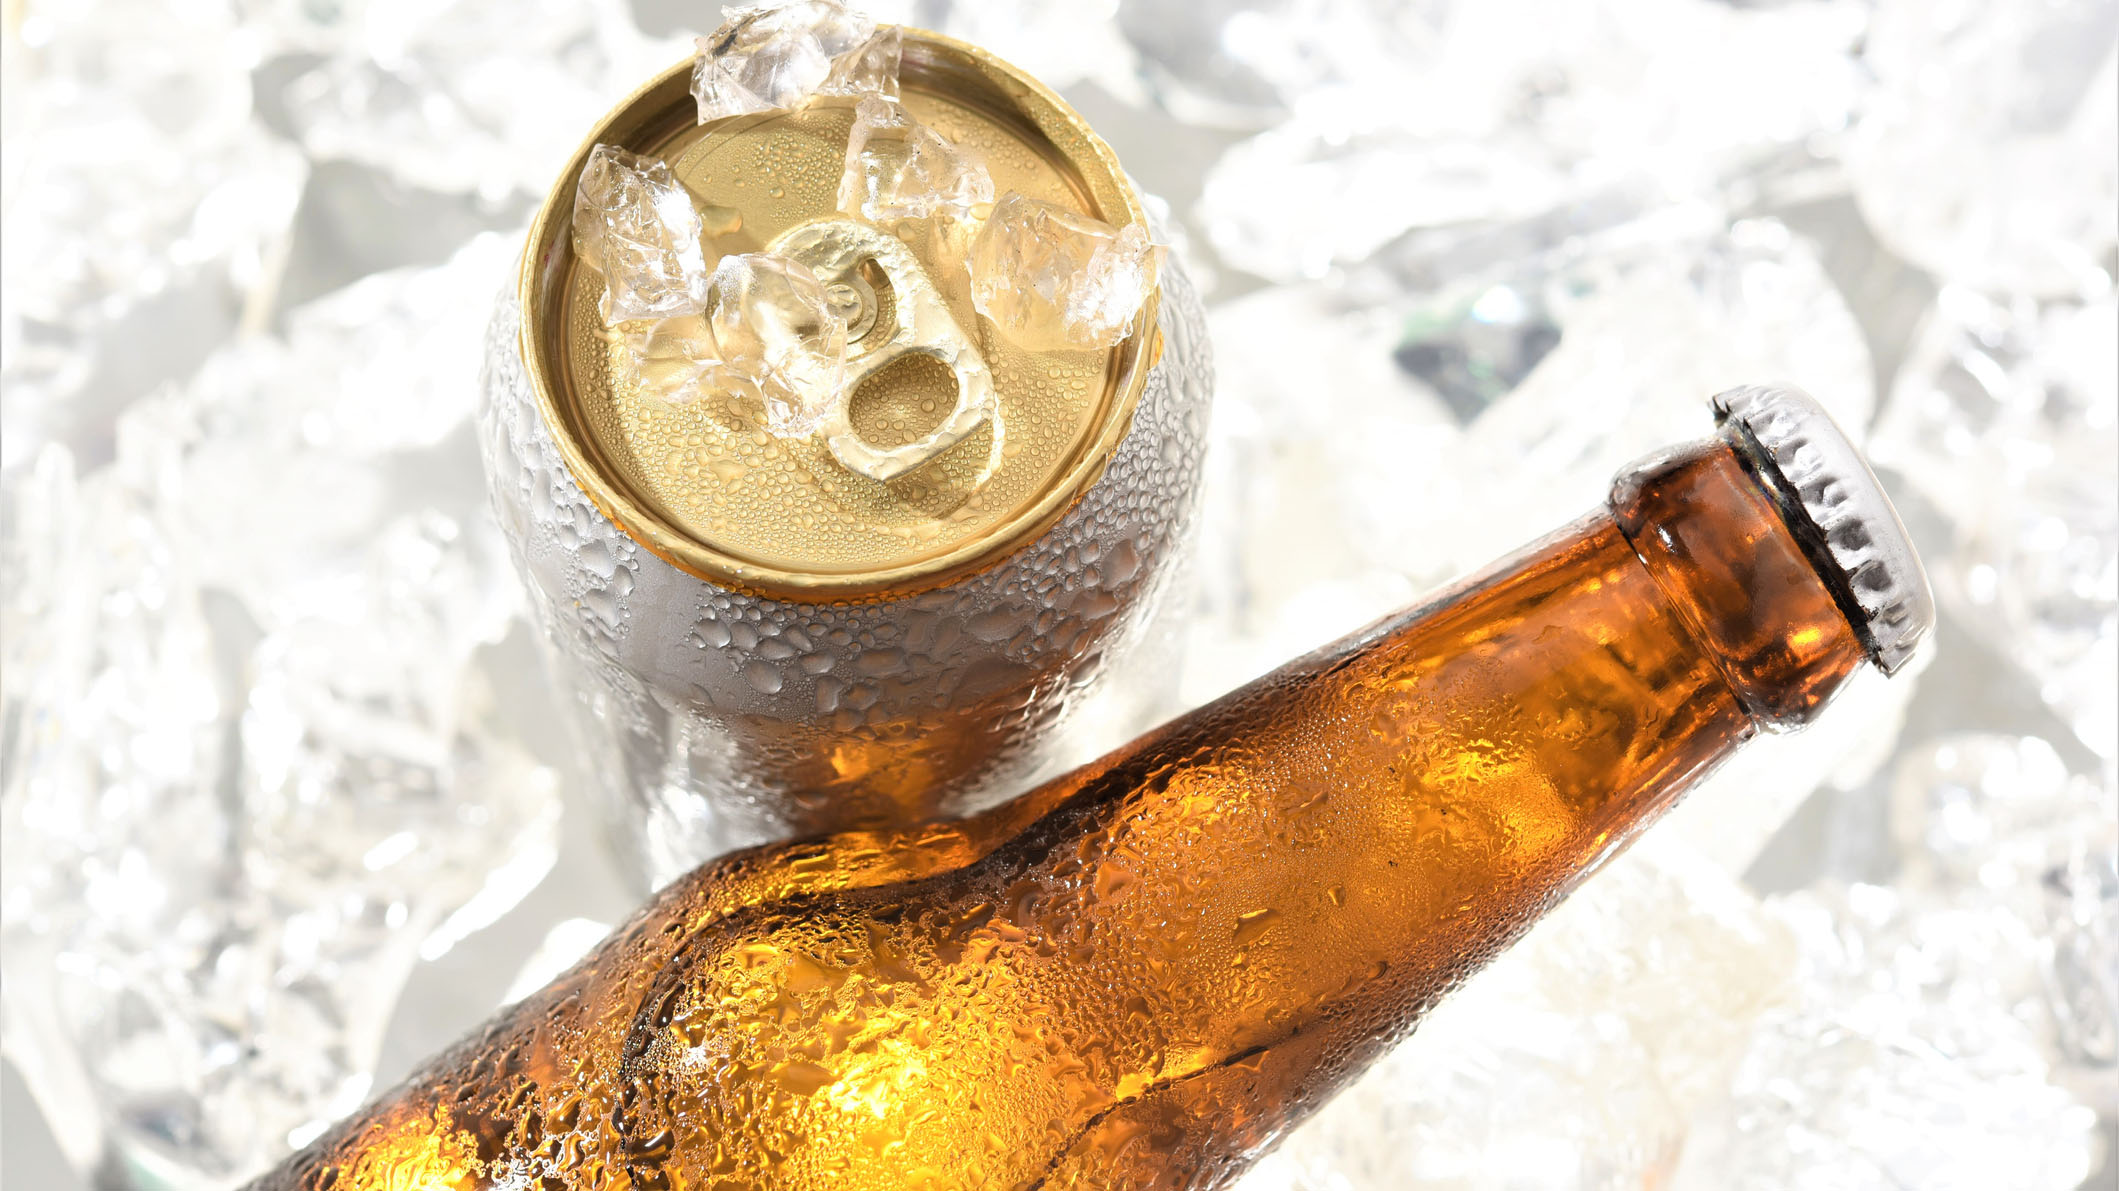 Beer recalled due to 'risk of explosion,' brewery says it's still 'completely safe to drink'